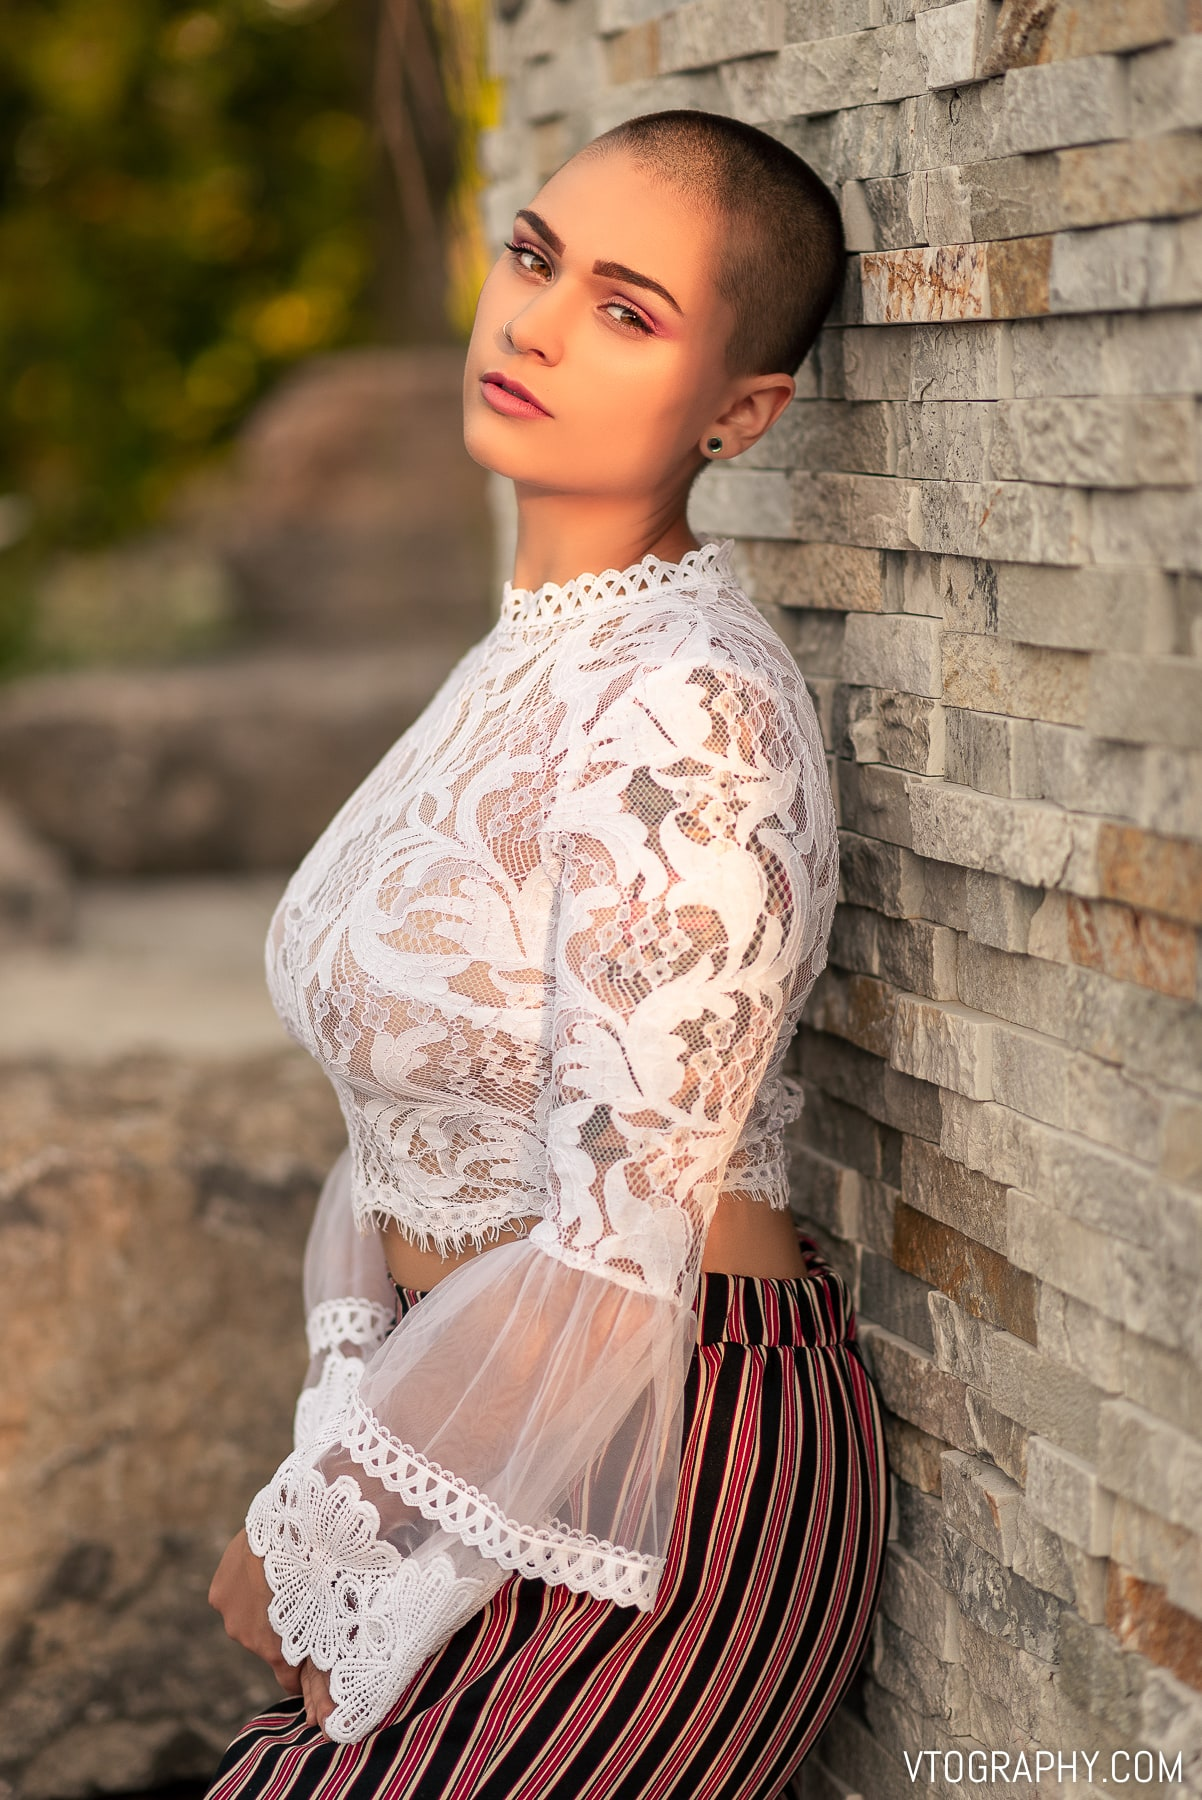 Singer Mela B wears white lace Urban Planet top during golden hour